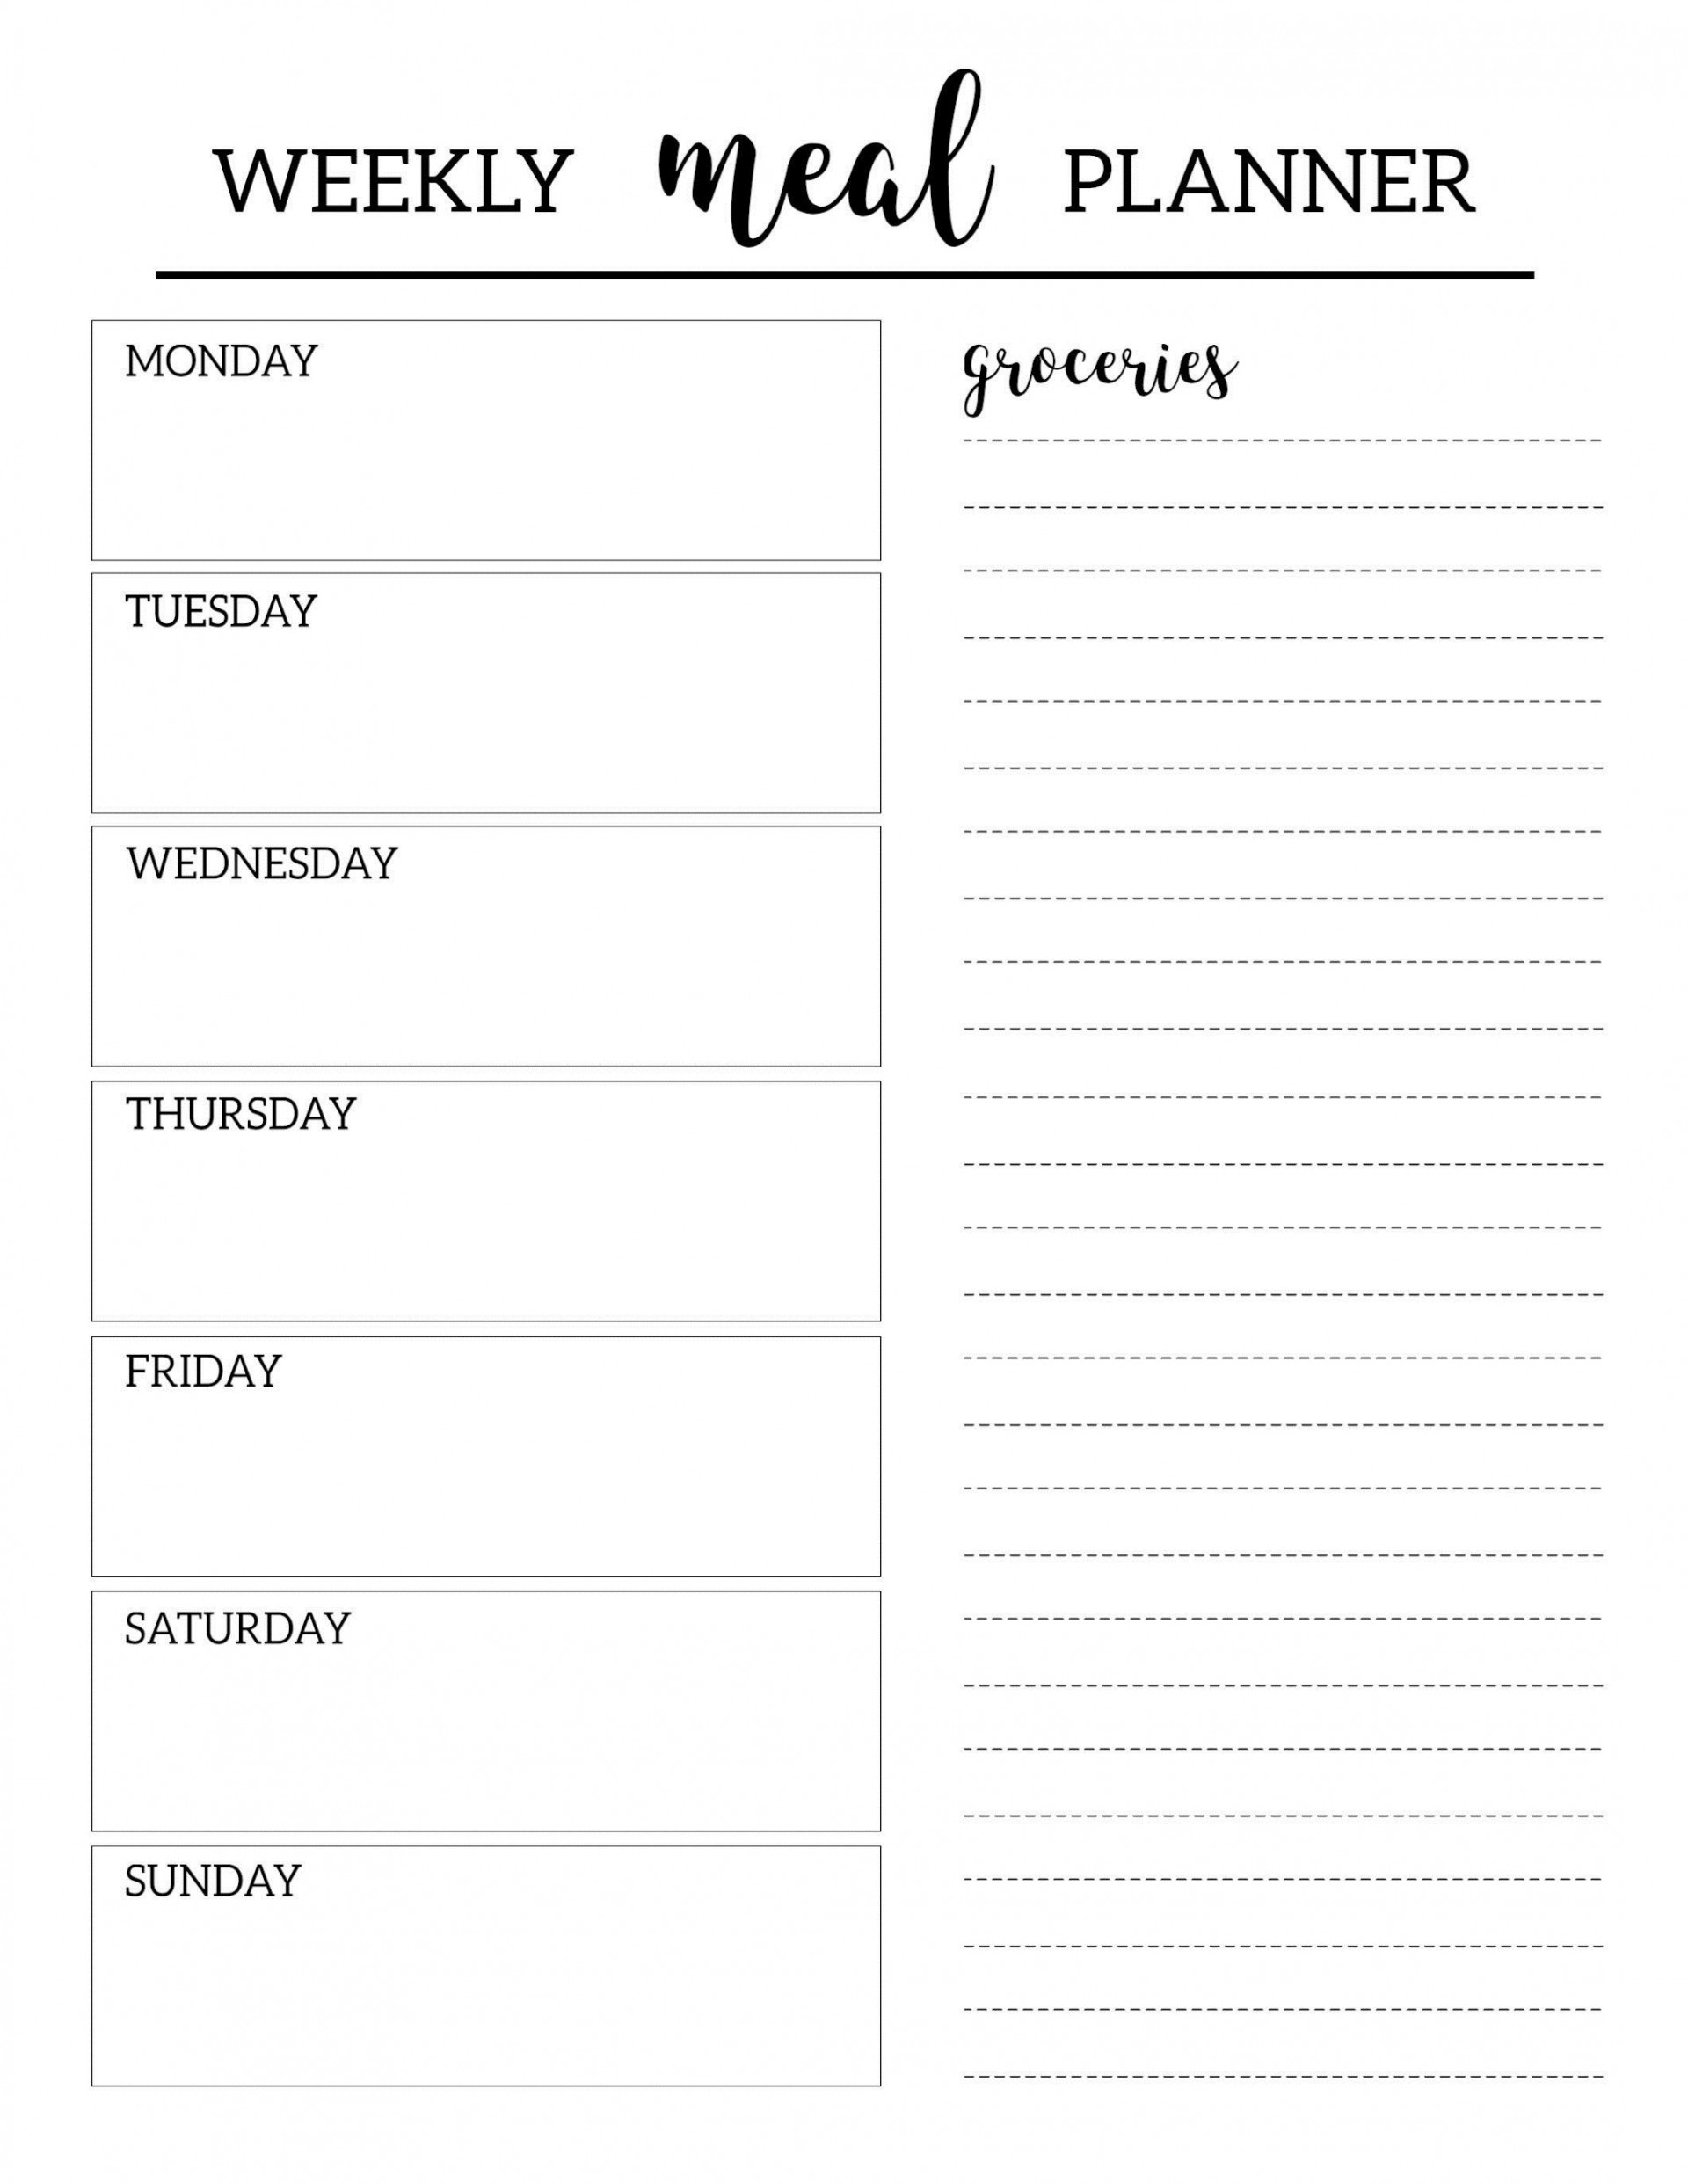 001 Unbelievable Free Meal Planner Template Pdf Photo  Weekly With Grocery List Monthly1920